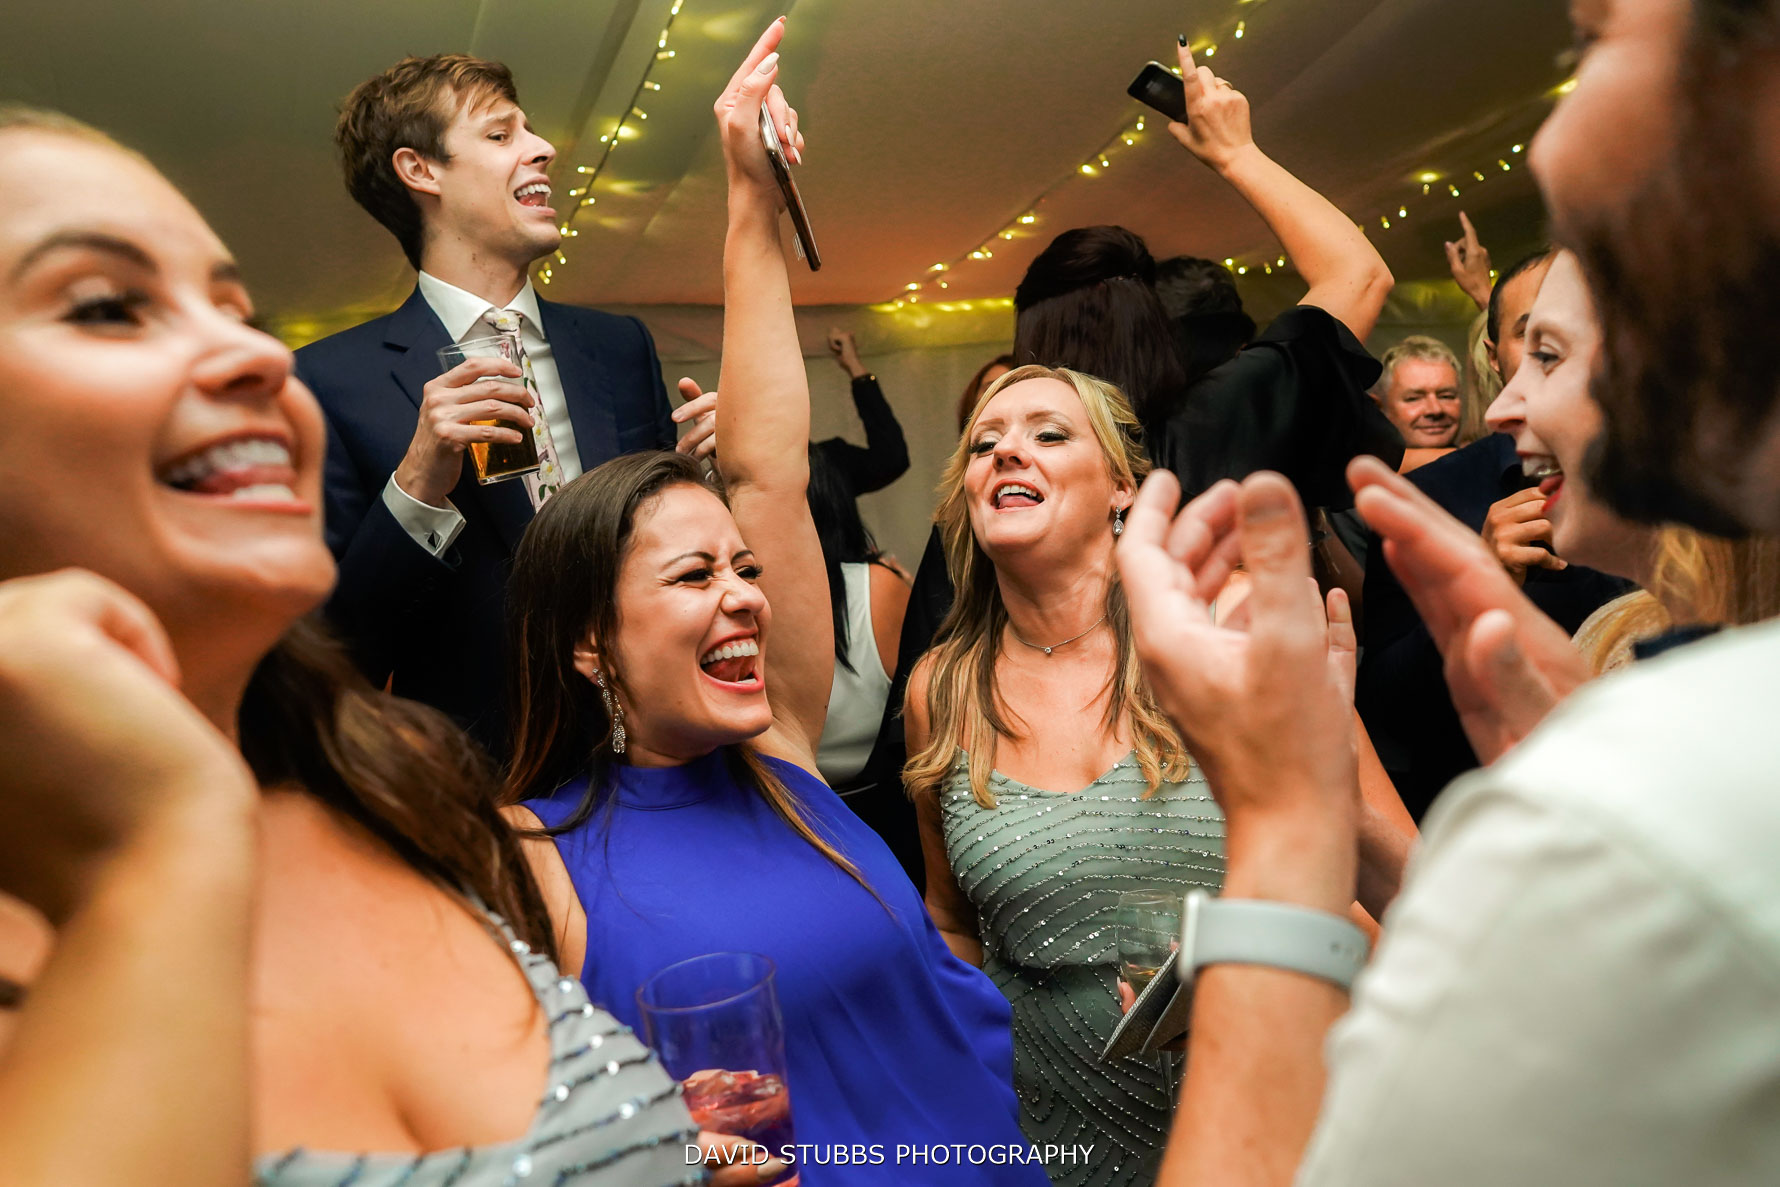 wide angle lens for dancing photos